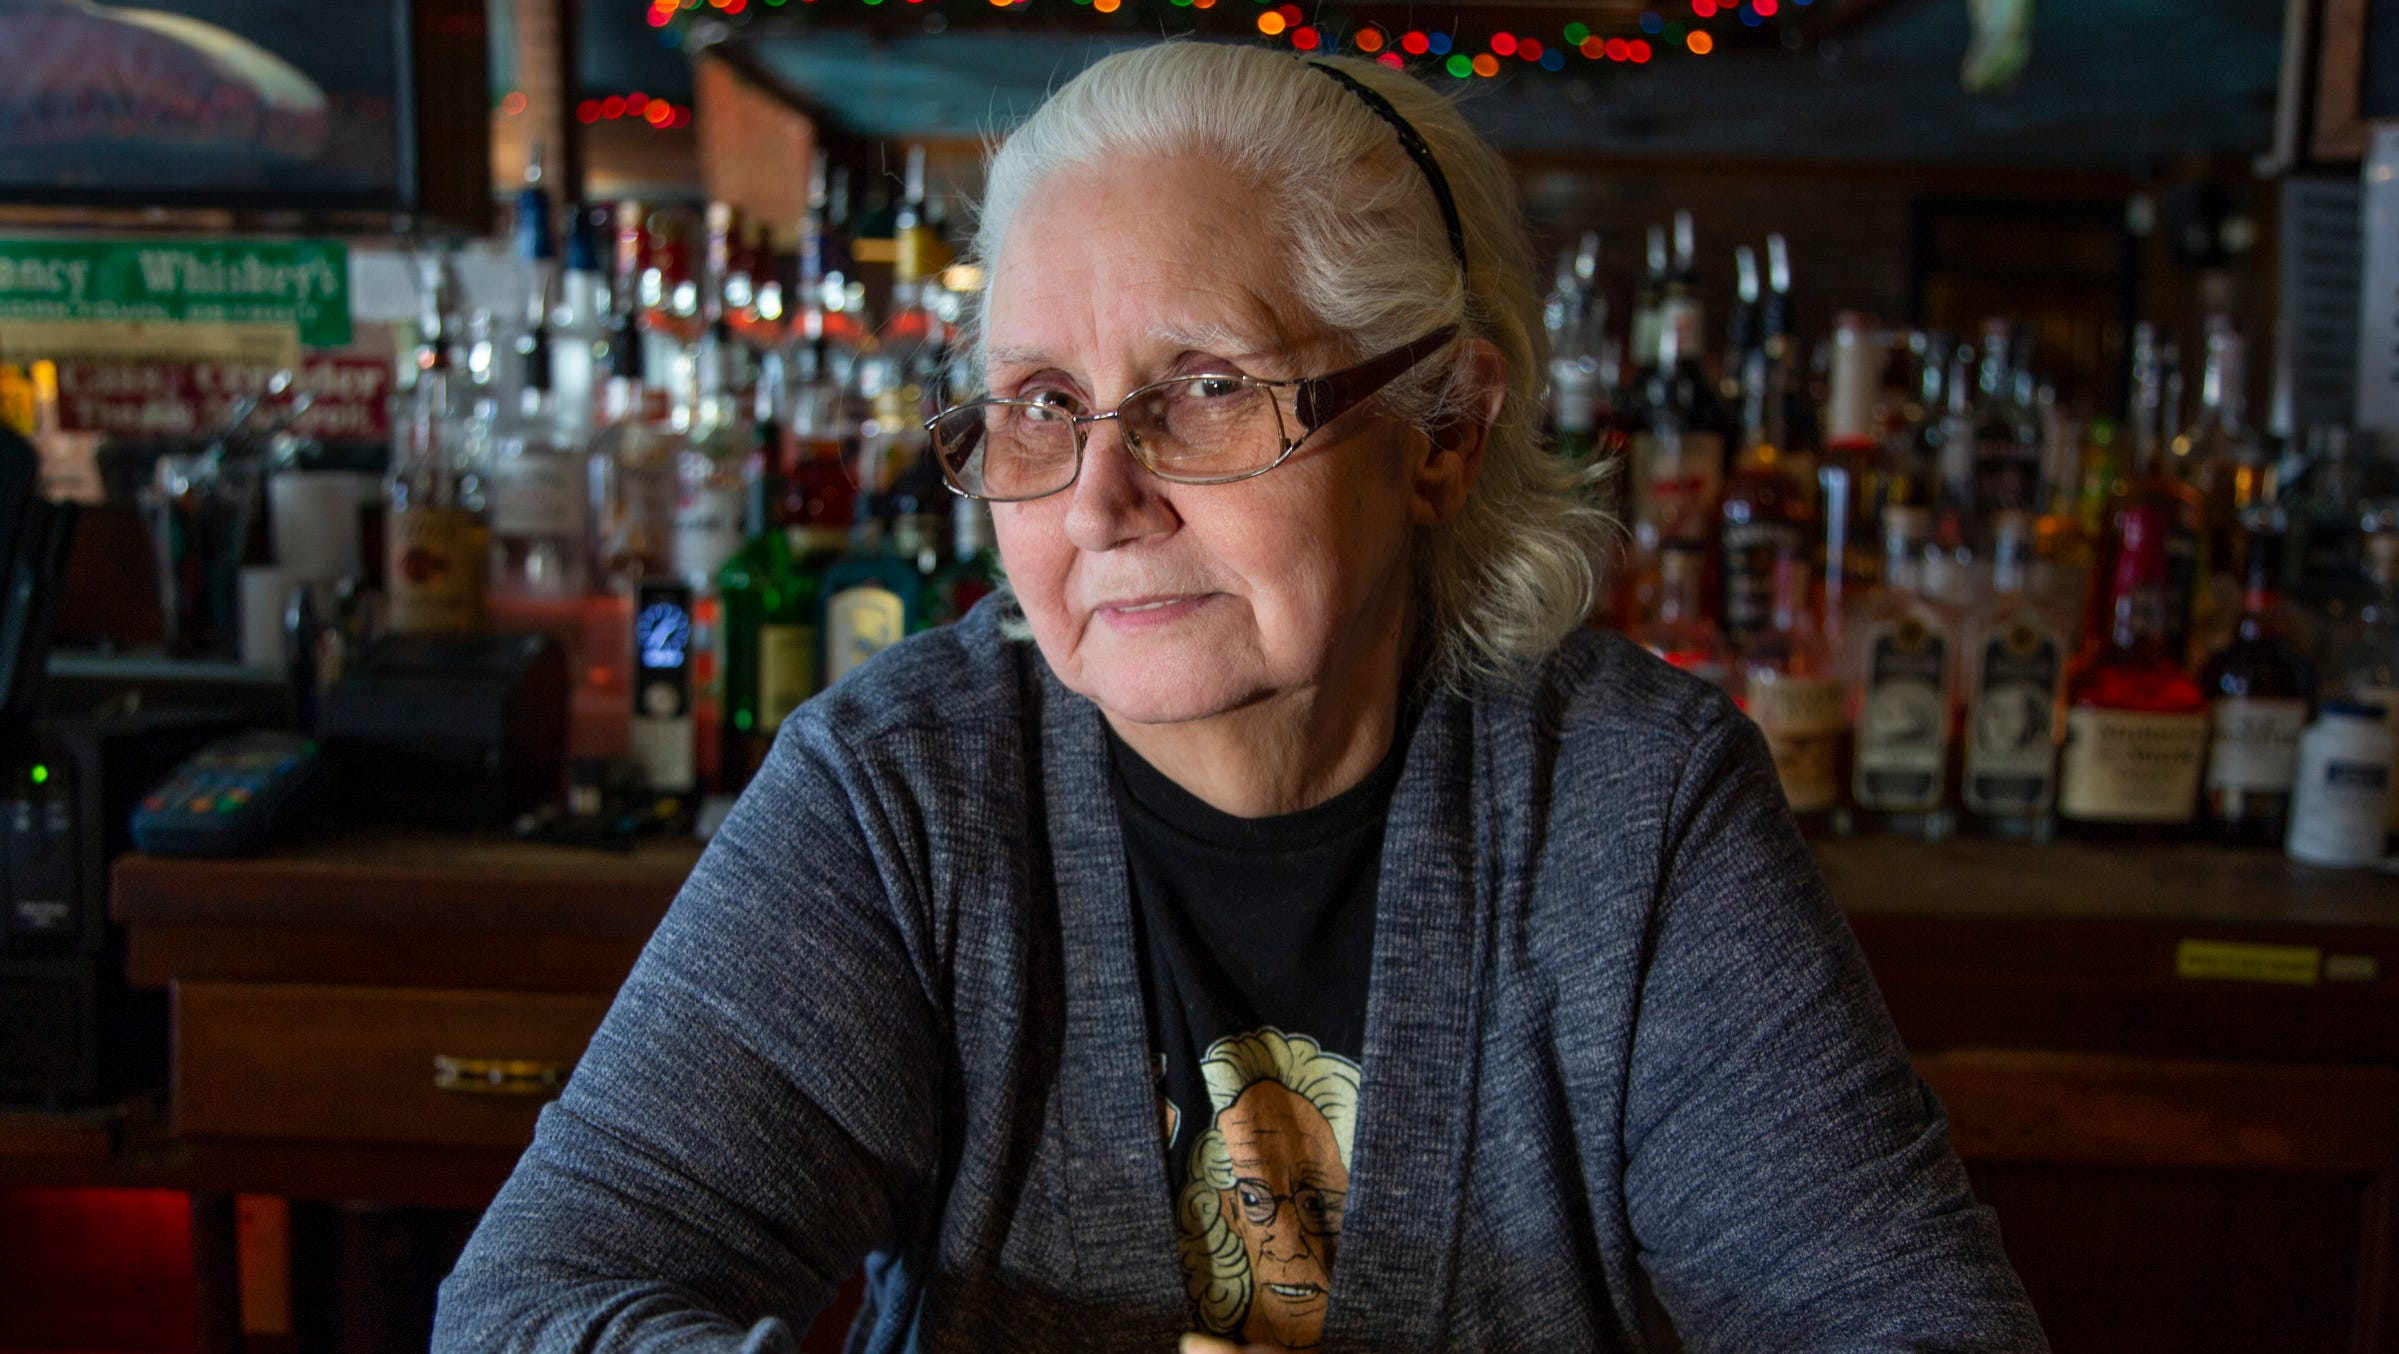 """Charleen Dexter, 69, of Detroit has been the """"Queen of the Bronx Bar"""" for 42-years. She will be retiring December 2018. The Free Press catches up with Dexter during one of her last days Tuesday Dec. 18, 2018."""